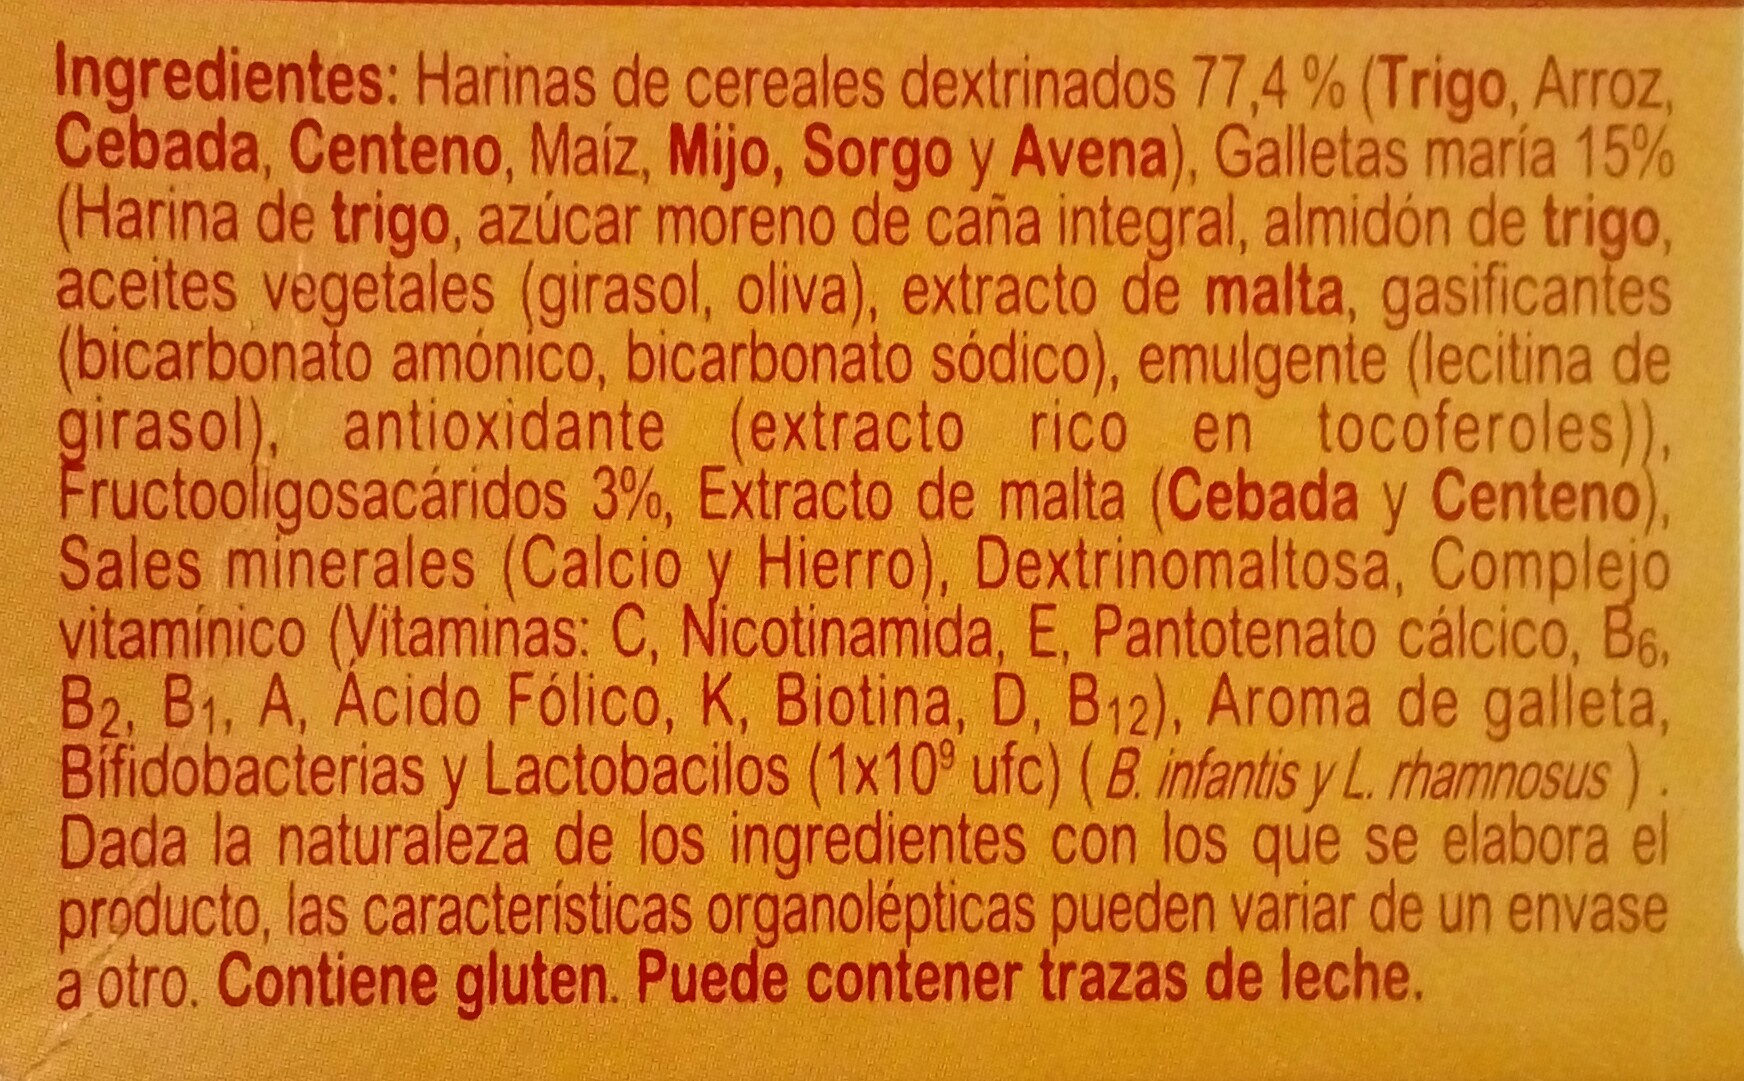 Blevit plus 8 cereales y galletas maría - Ingredients